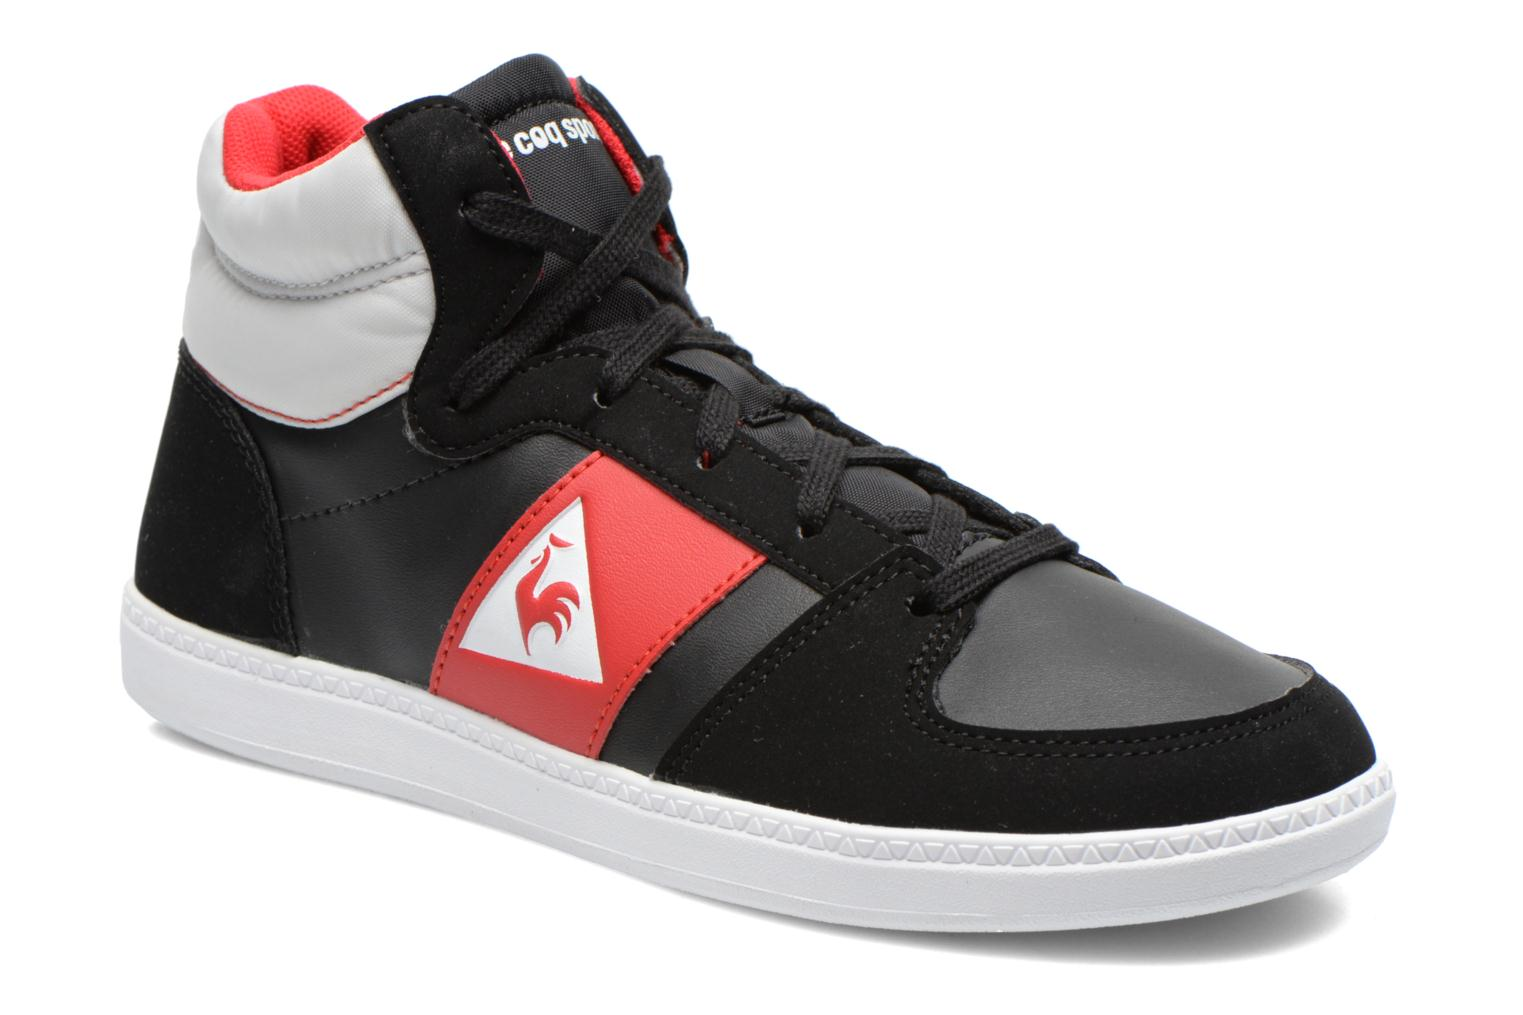 Sneakers Rebond Mid GS Boy by Le Coq Sportif